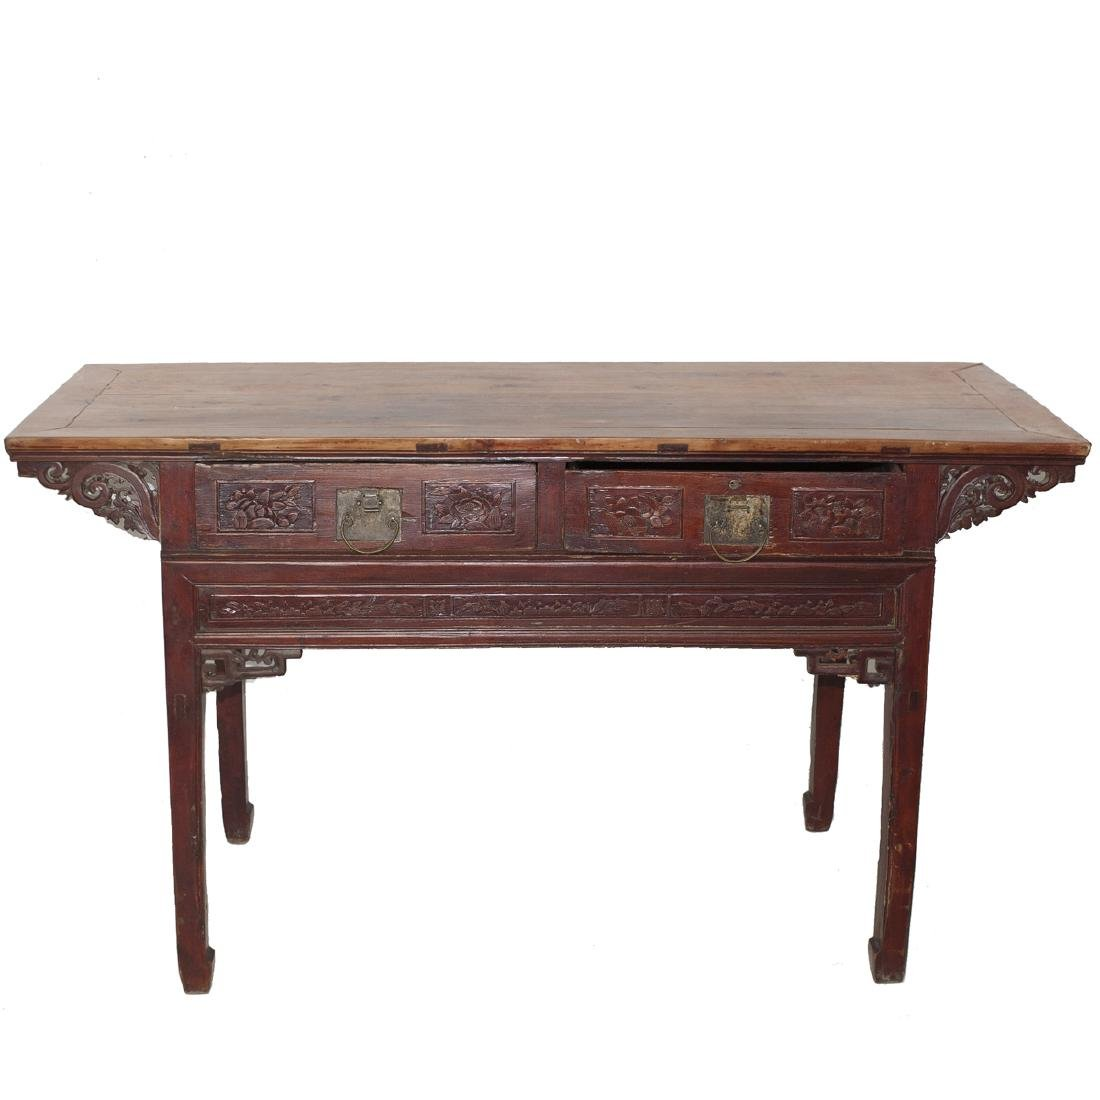 Antique Chinese Wooden Altar Table